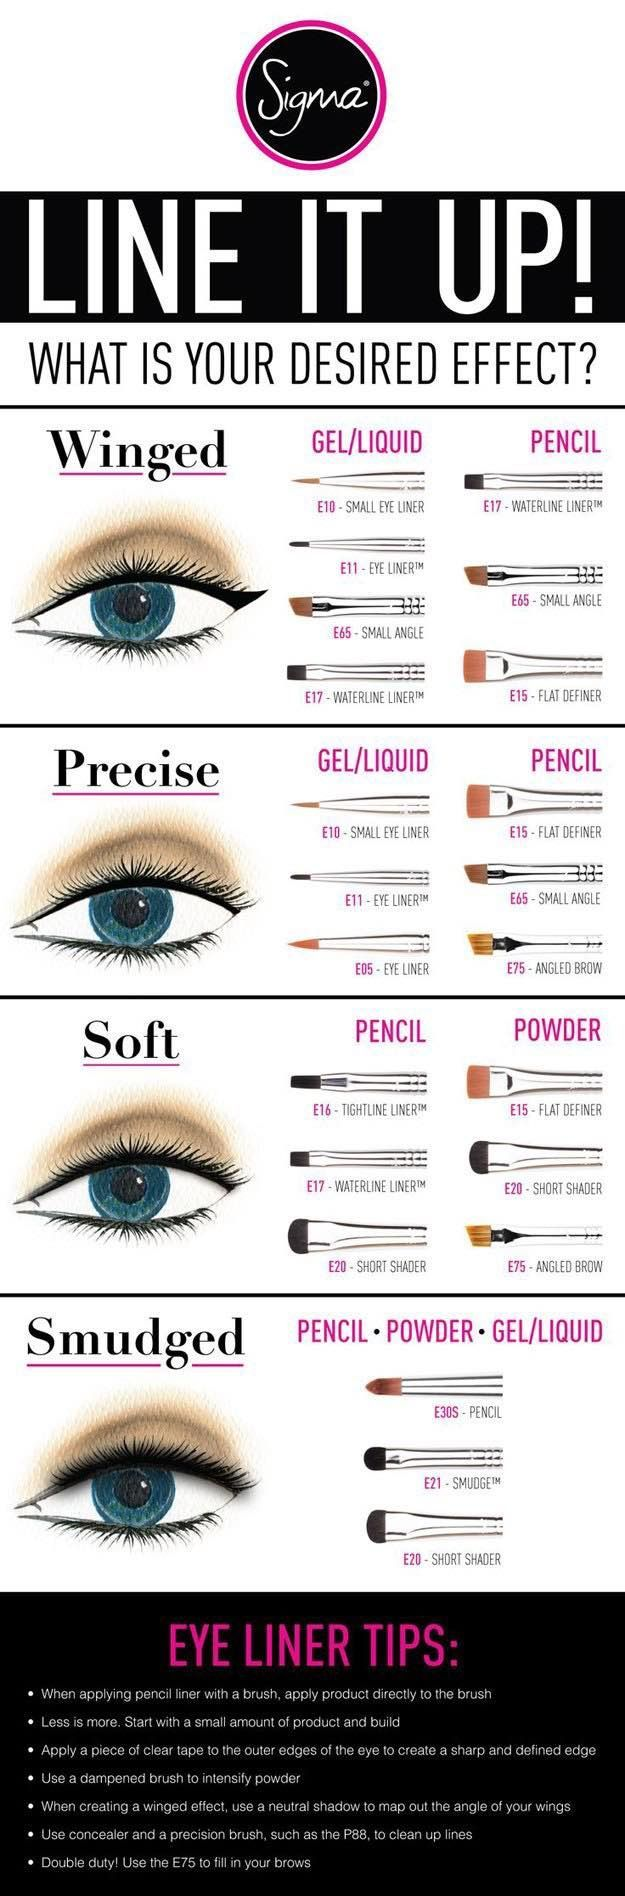 Best Makeup Eyeliner Brushes | Best Makeup Tutorials And Beauty Tips From The Web | Makeup Tutorials